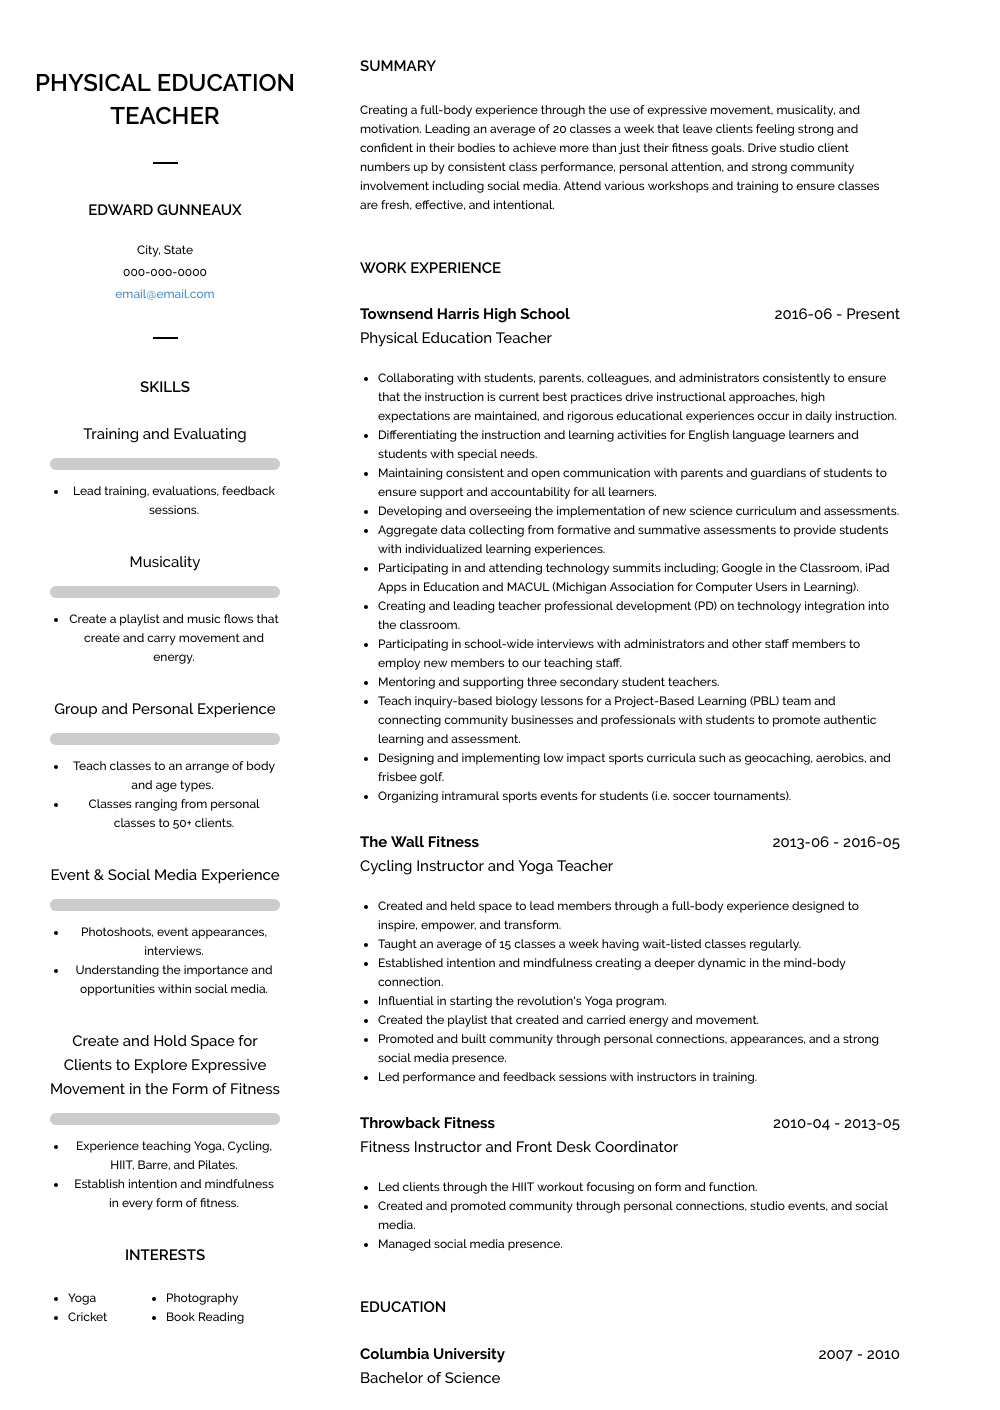 physical education teacher resume objective examples